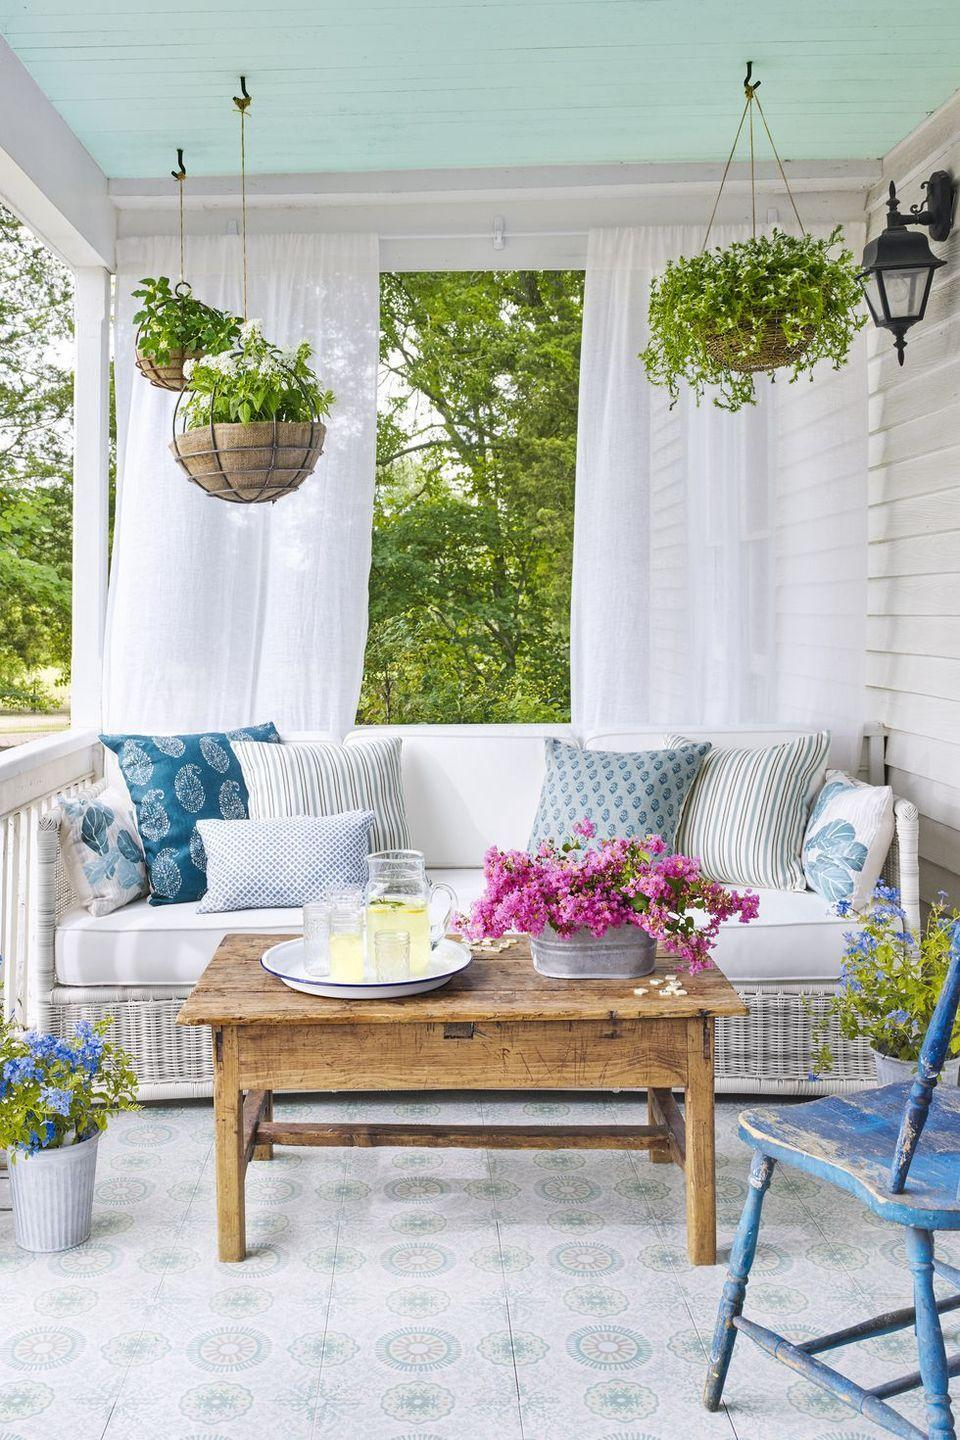 "<p>If you don't have space on the ground for the garden of your dreams, use <a href=""https://www.goodhousekeeping.com/home/gardening/advice/g1007/backyard-decorating/?slide=18"" rel=""nofollow noopener"" target=""_blank"" data-ylk=""slk:porch ceilings"" class=""link rapid-noclick-resp"">porch ceilings</a> to display your plant babies in hanging baskets.</p>"